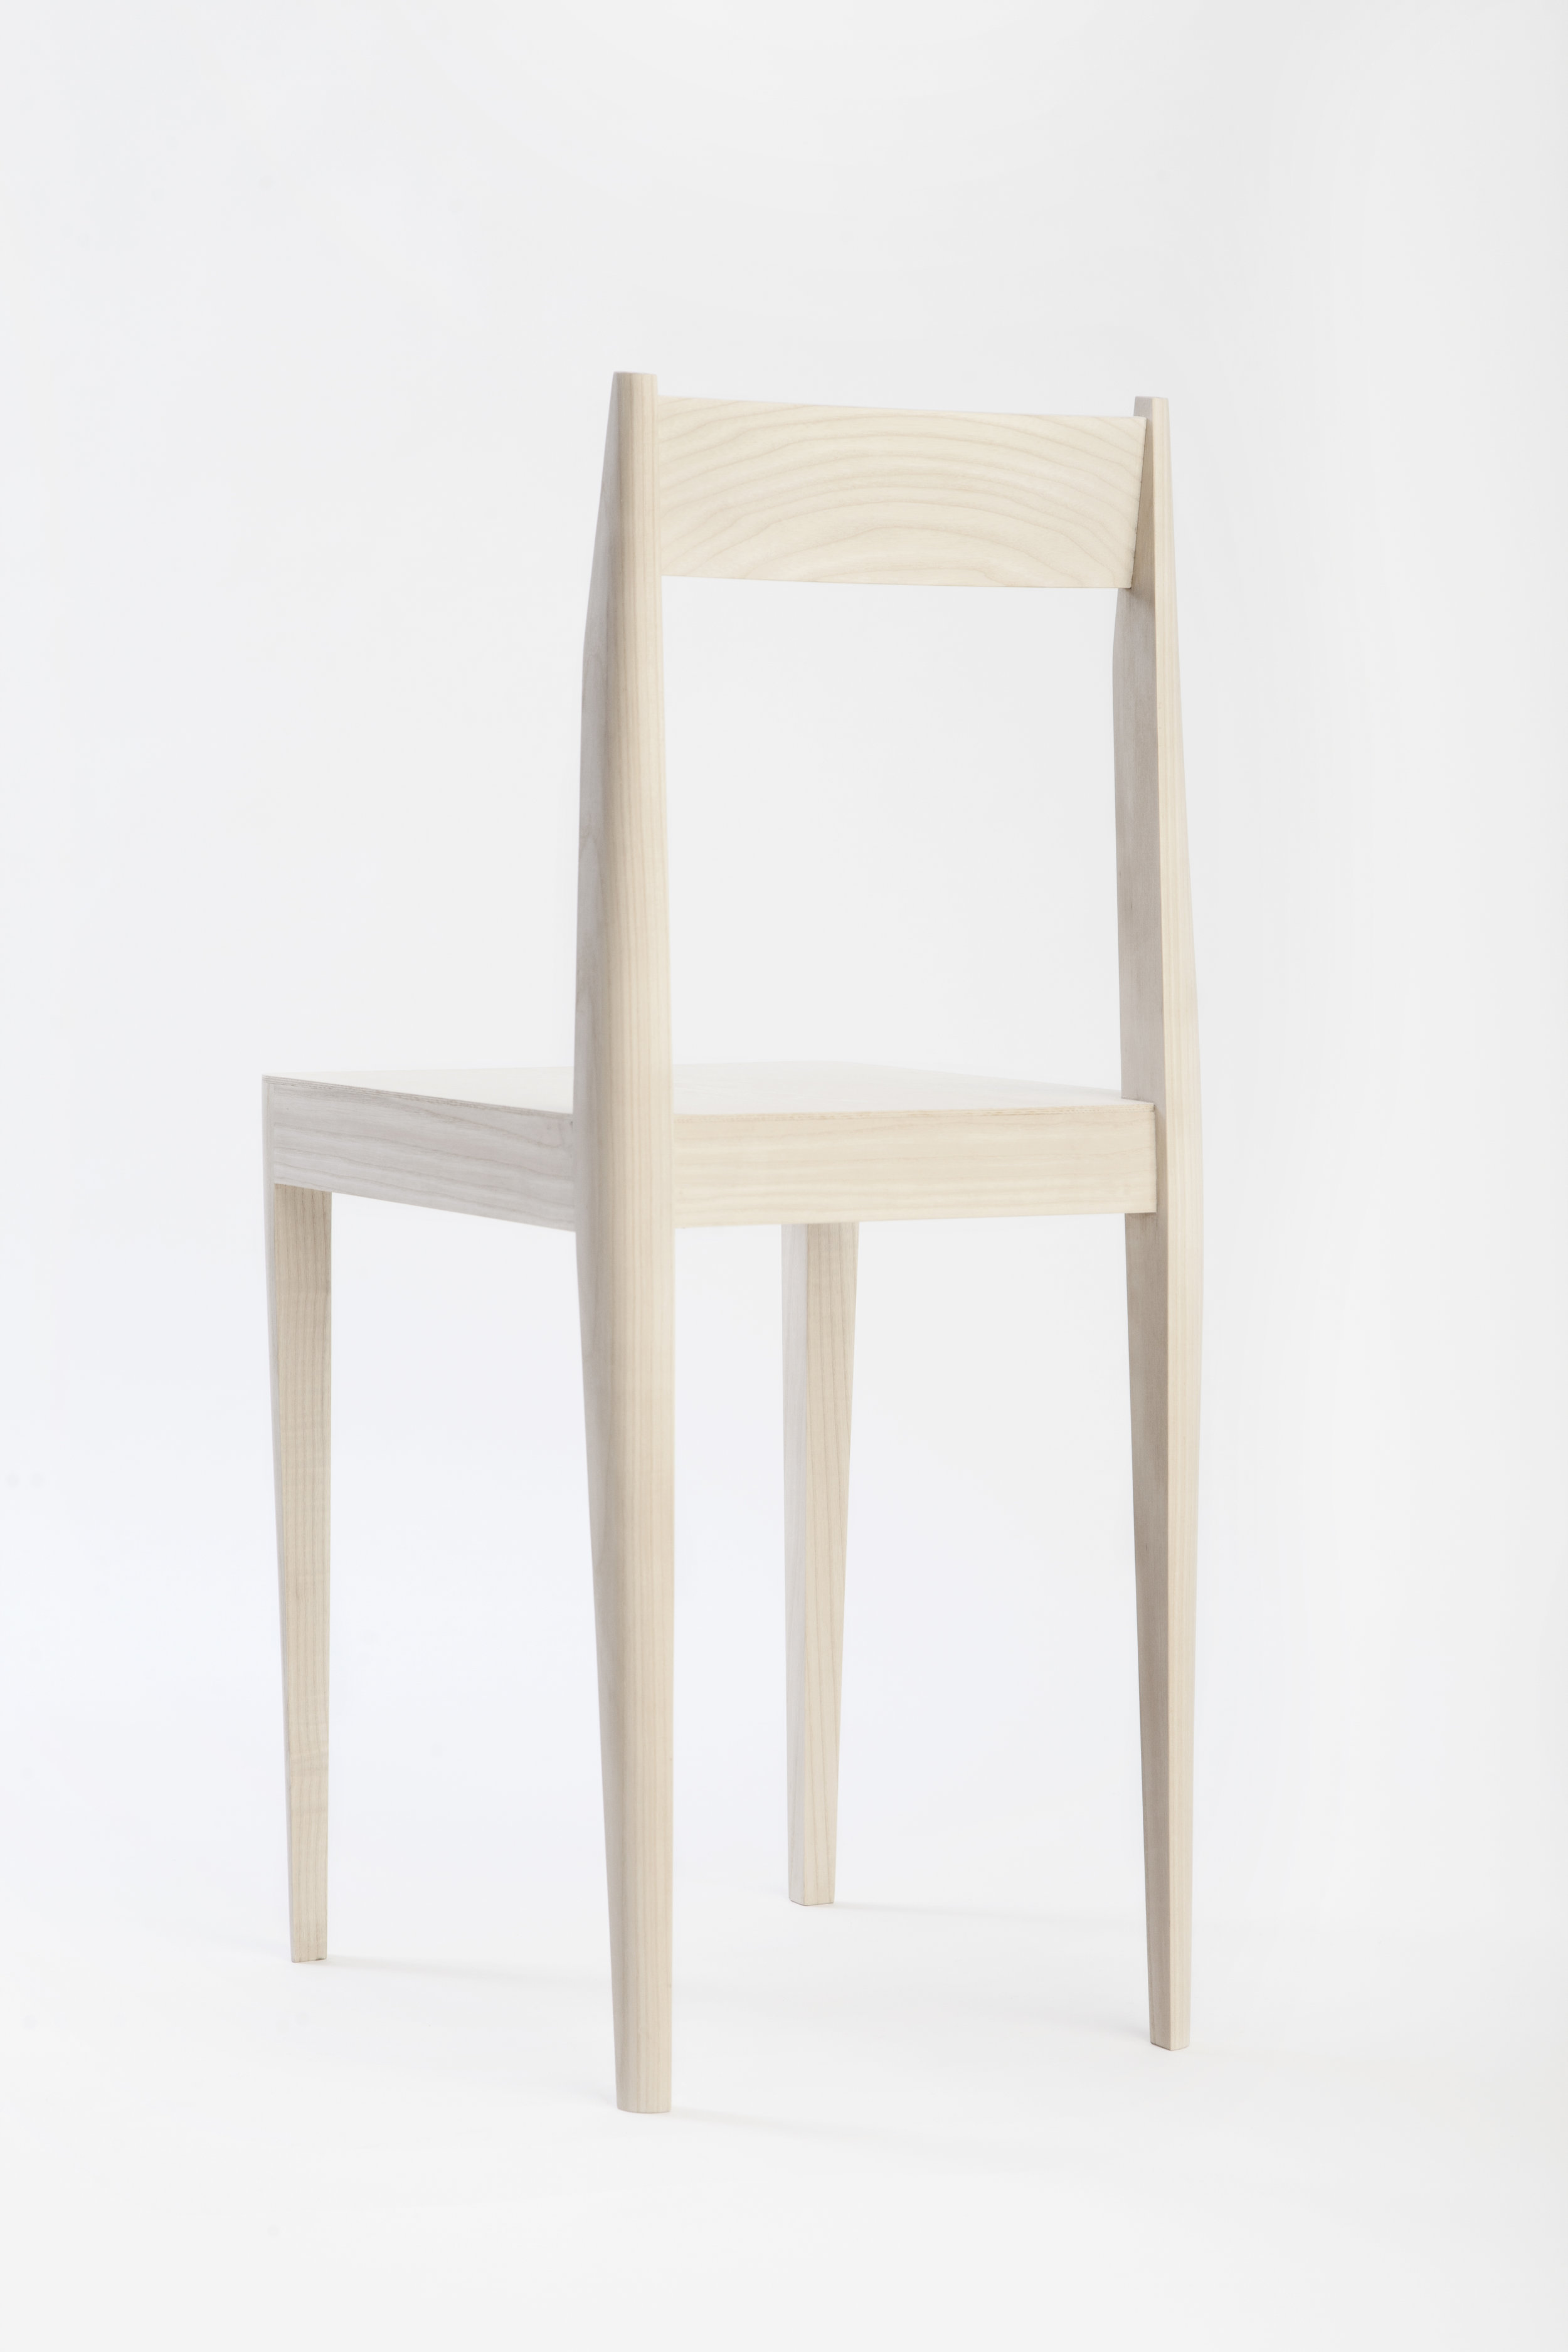 Depping_Reworked Chair.jpg